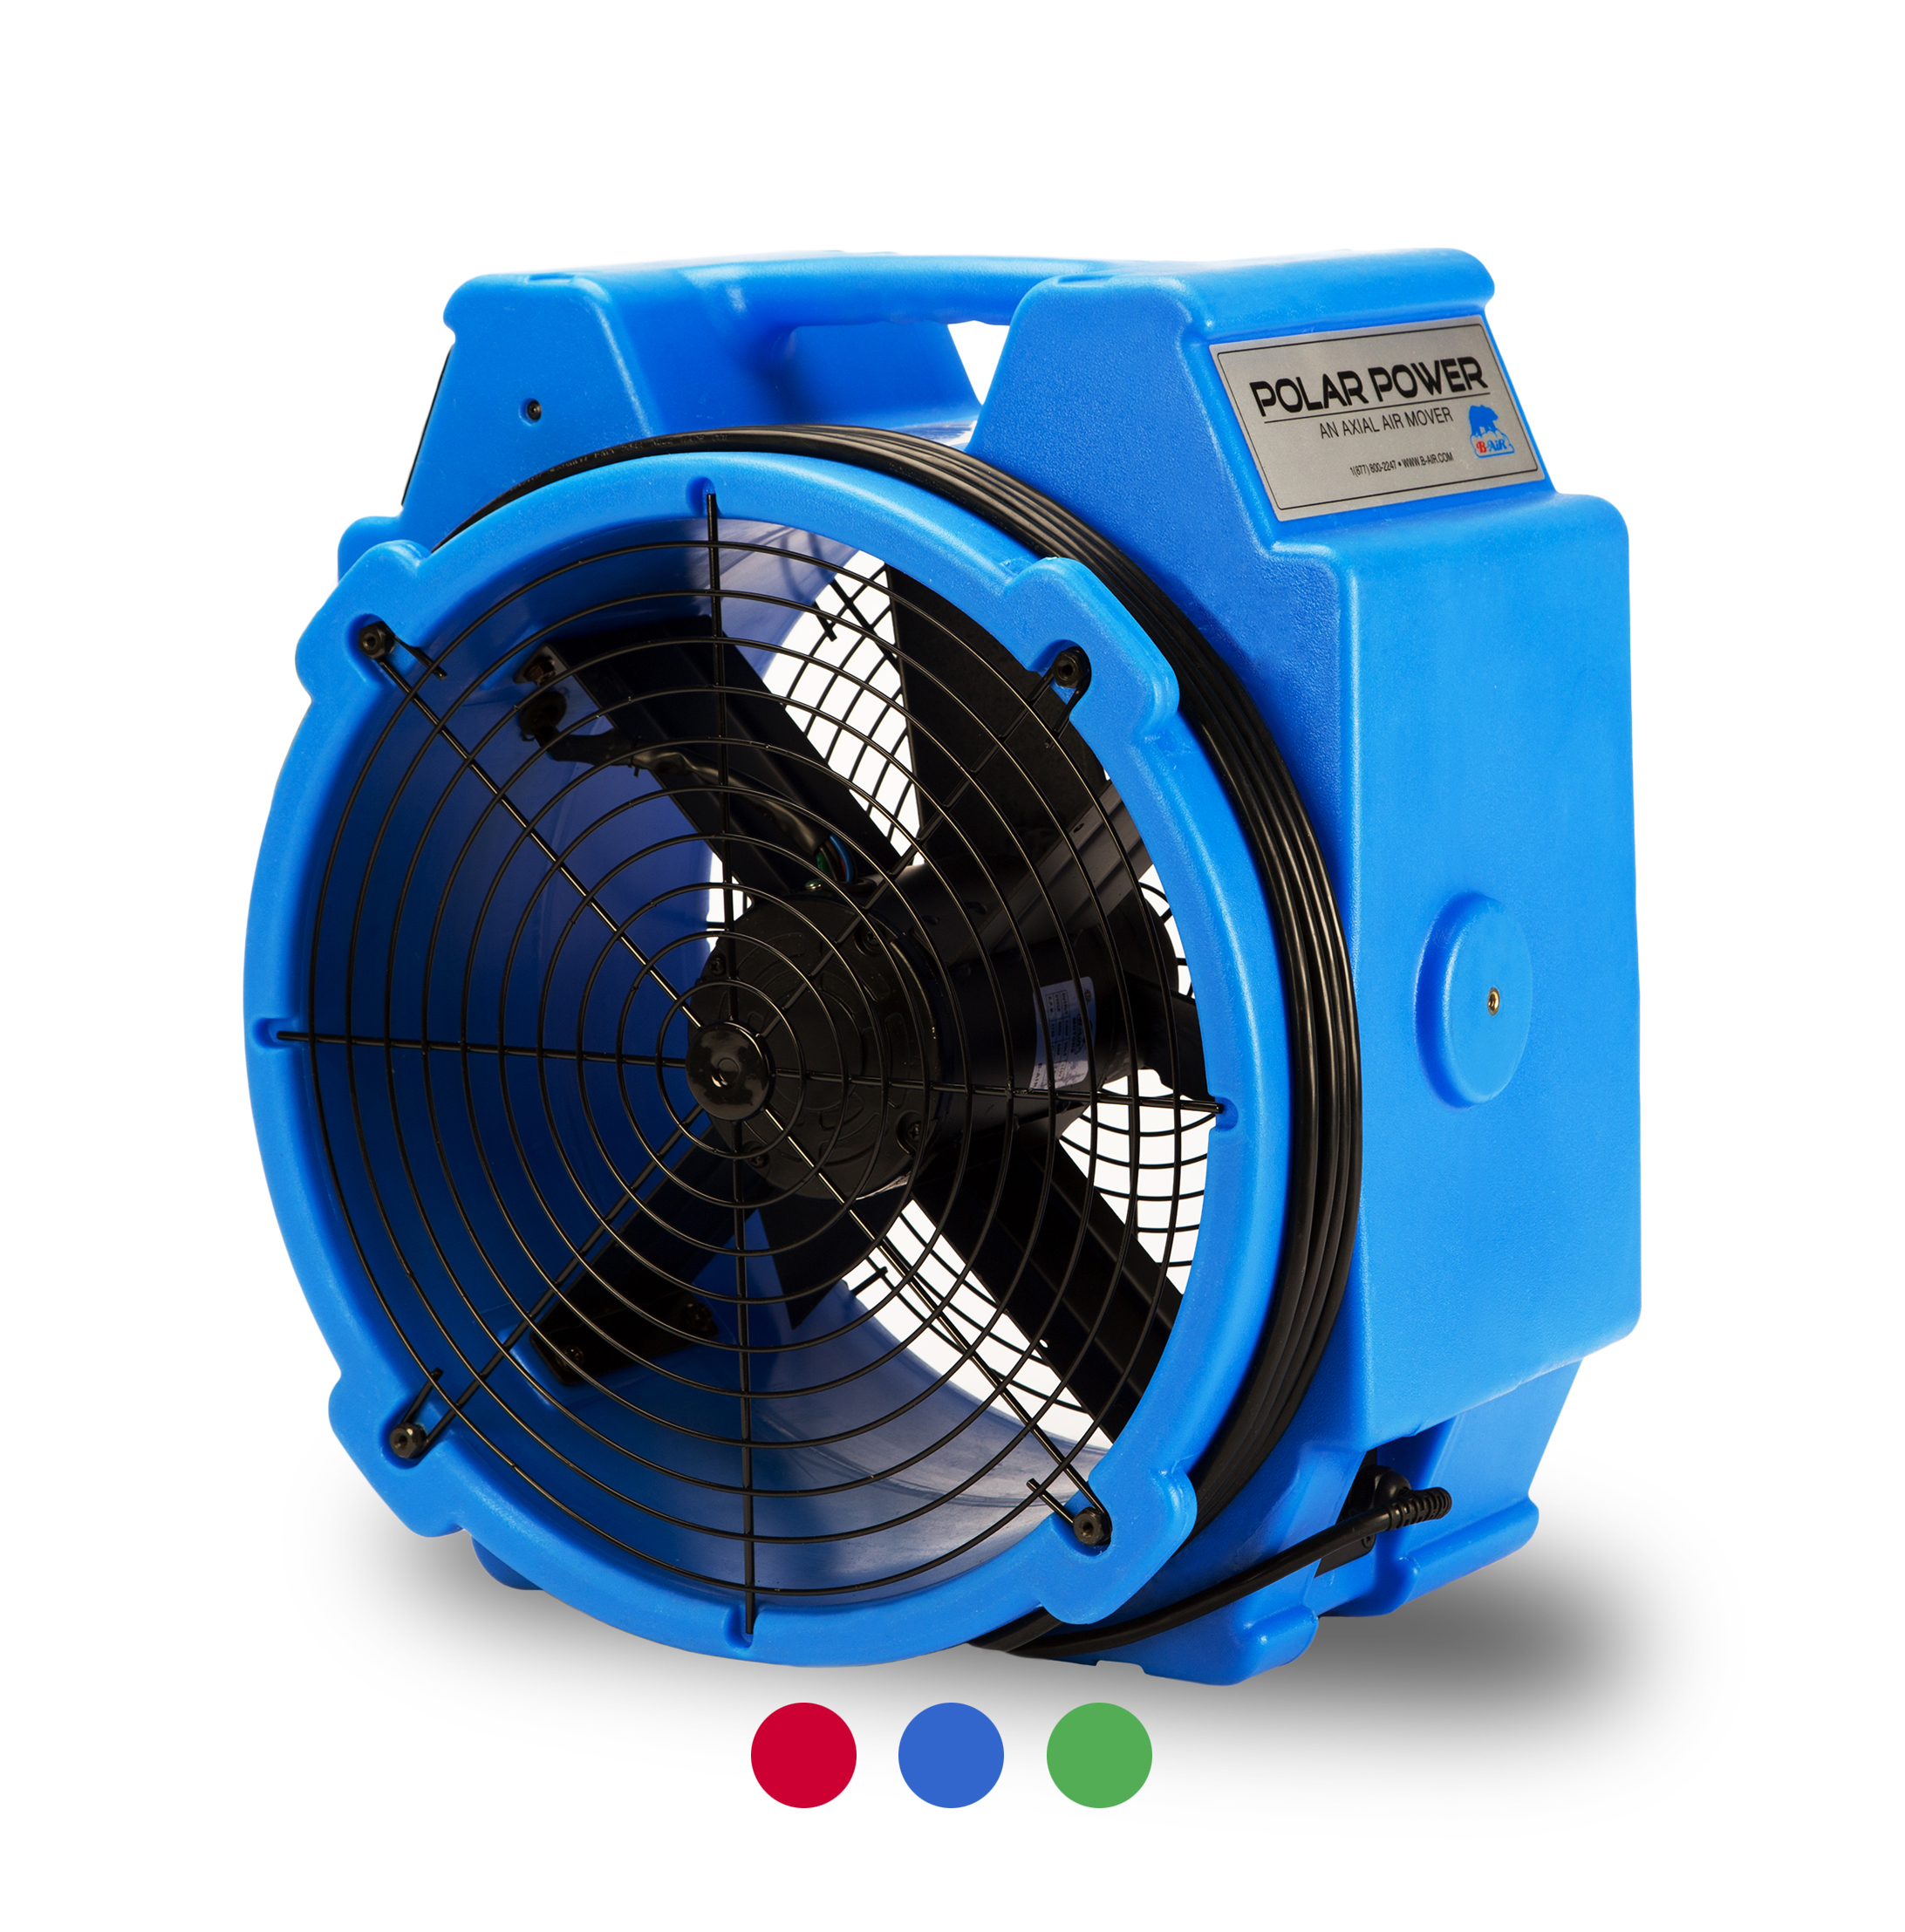 B-AIR® POLAR BEAR PB-25 air mover blue 5